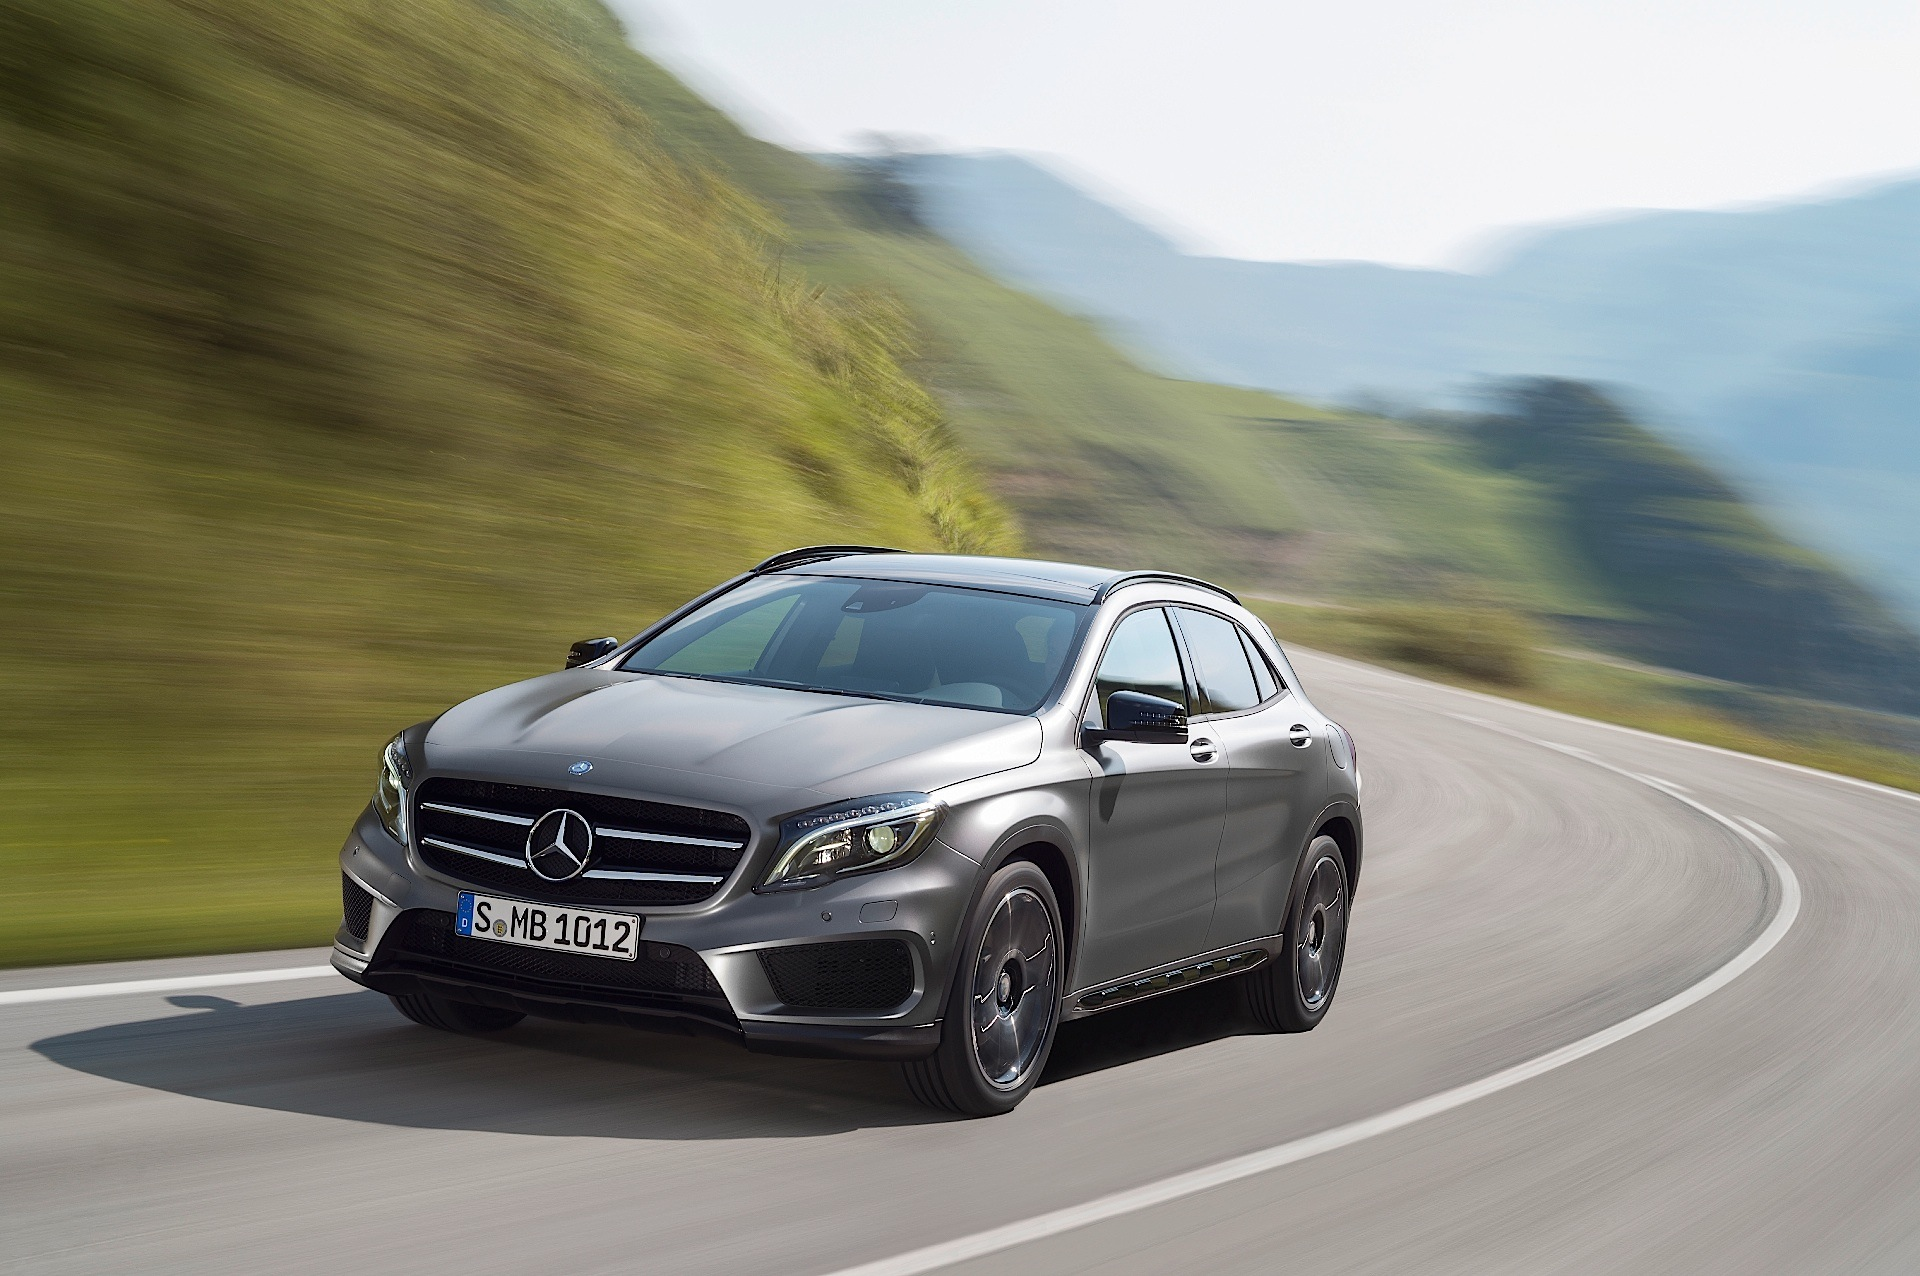 MERCEDES BENZ GLA - 2013, 2014, 2015, 2016, 2017 ...